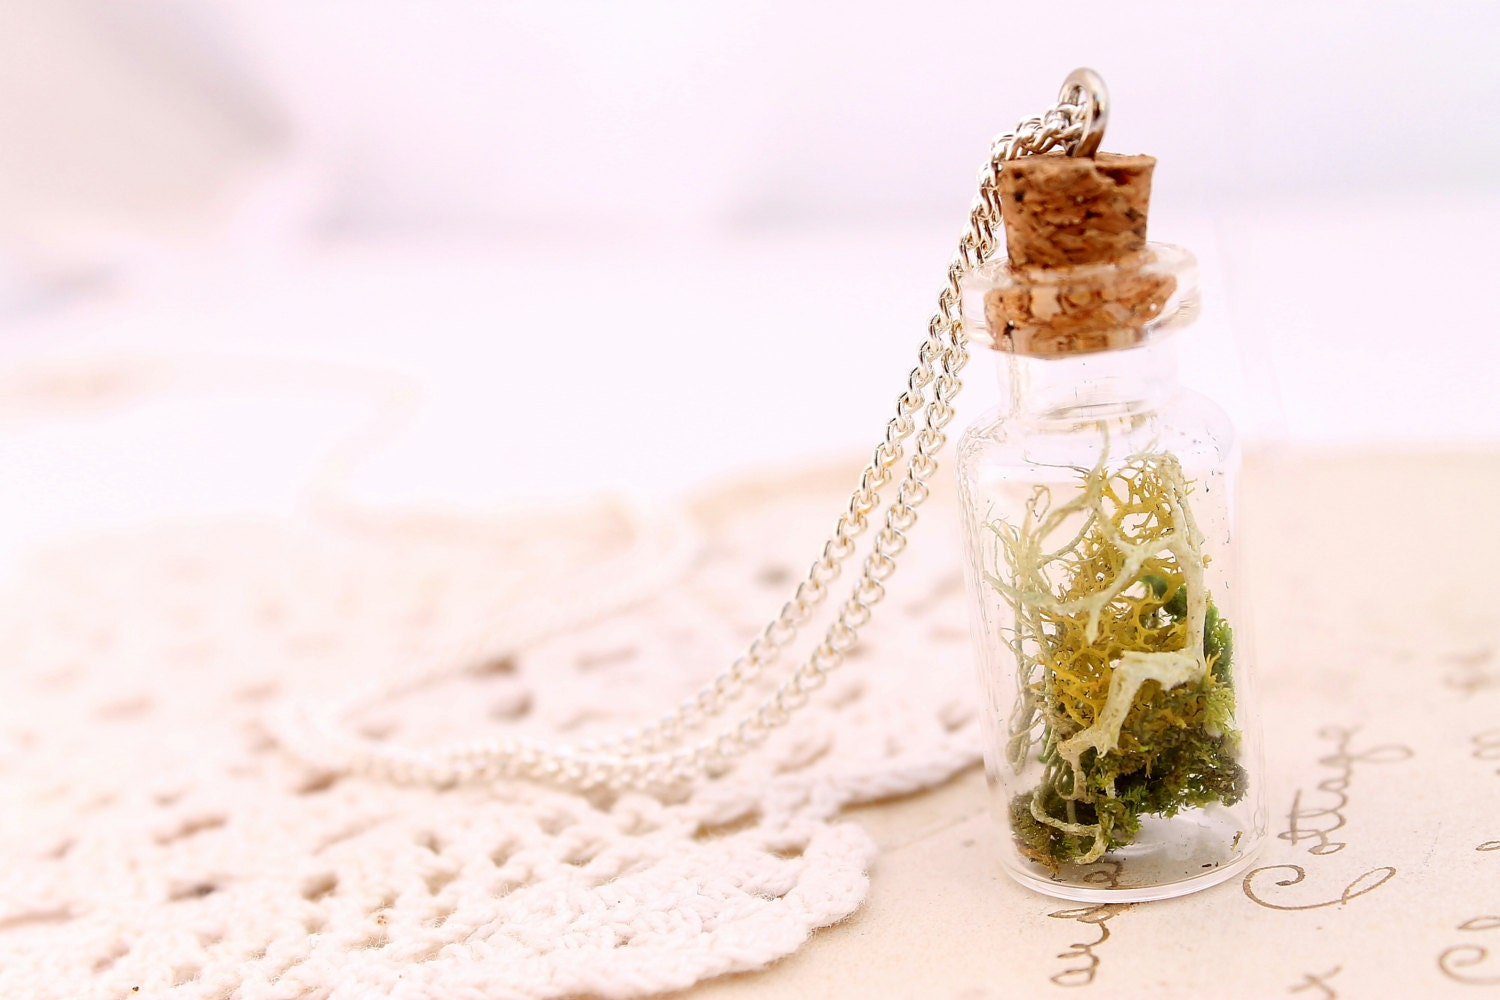 Botanical specimen necklace, Miniature terrarium pendant, botanical jewelry, woodland wedding, Irish jewelry, etsy store , beautyfoodlfie.blogspot.com